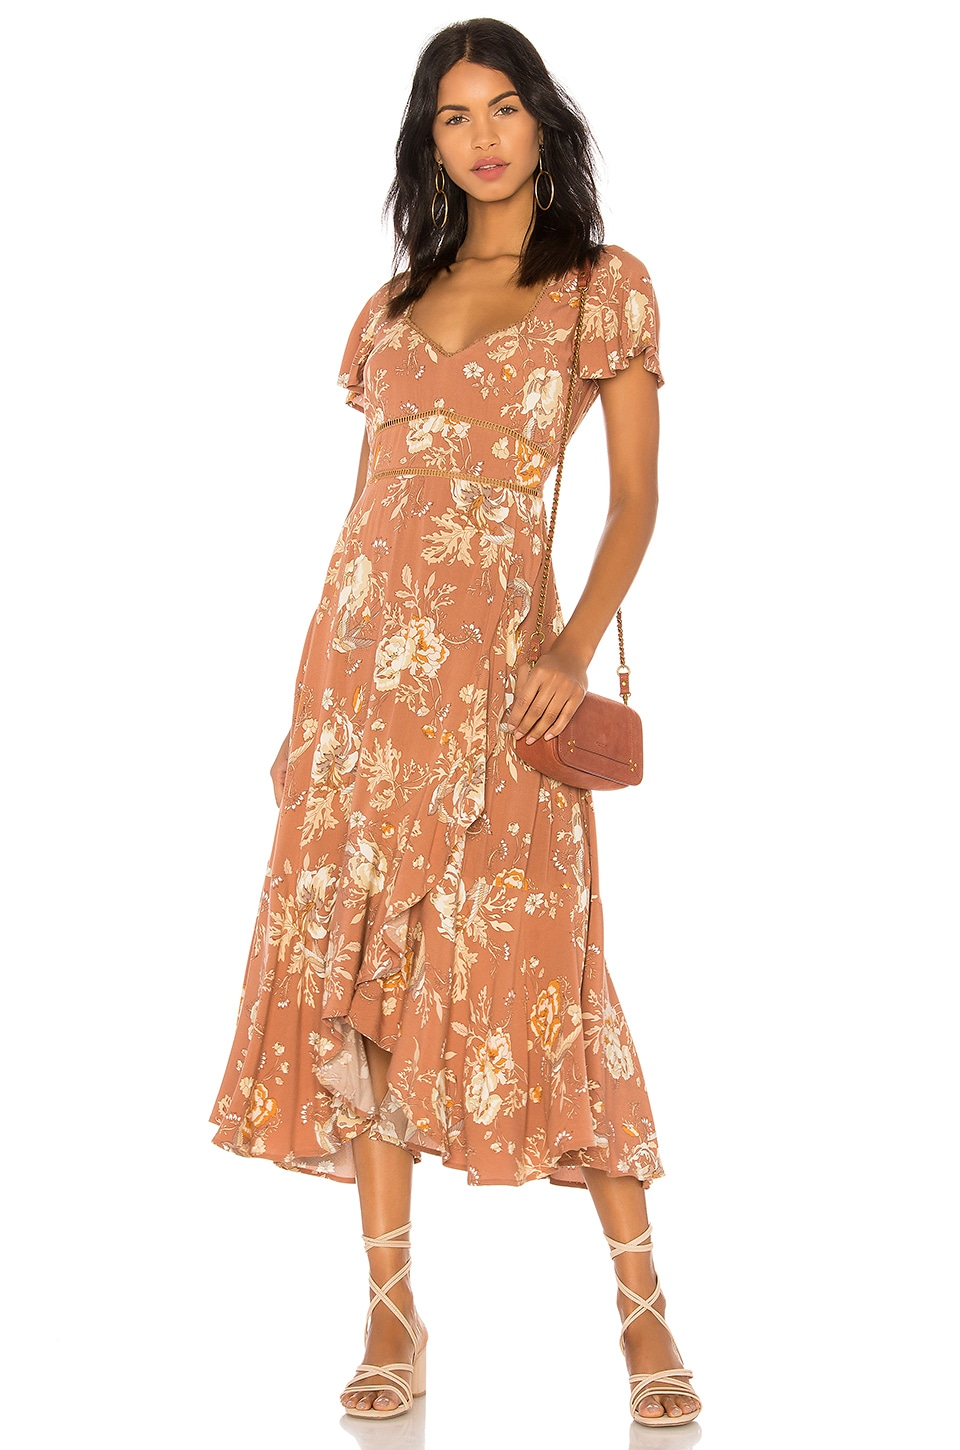 Spell & The Gypsy Collective Rosa Garden Party Dress in Camel